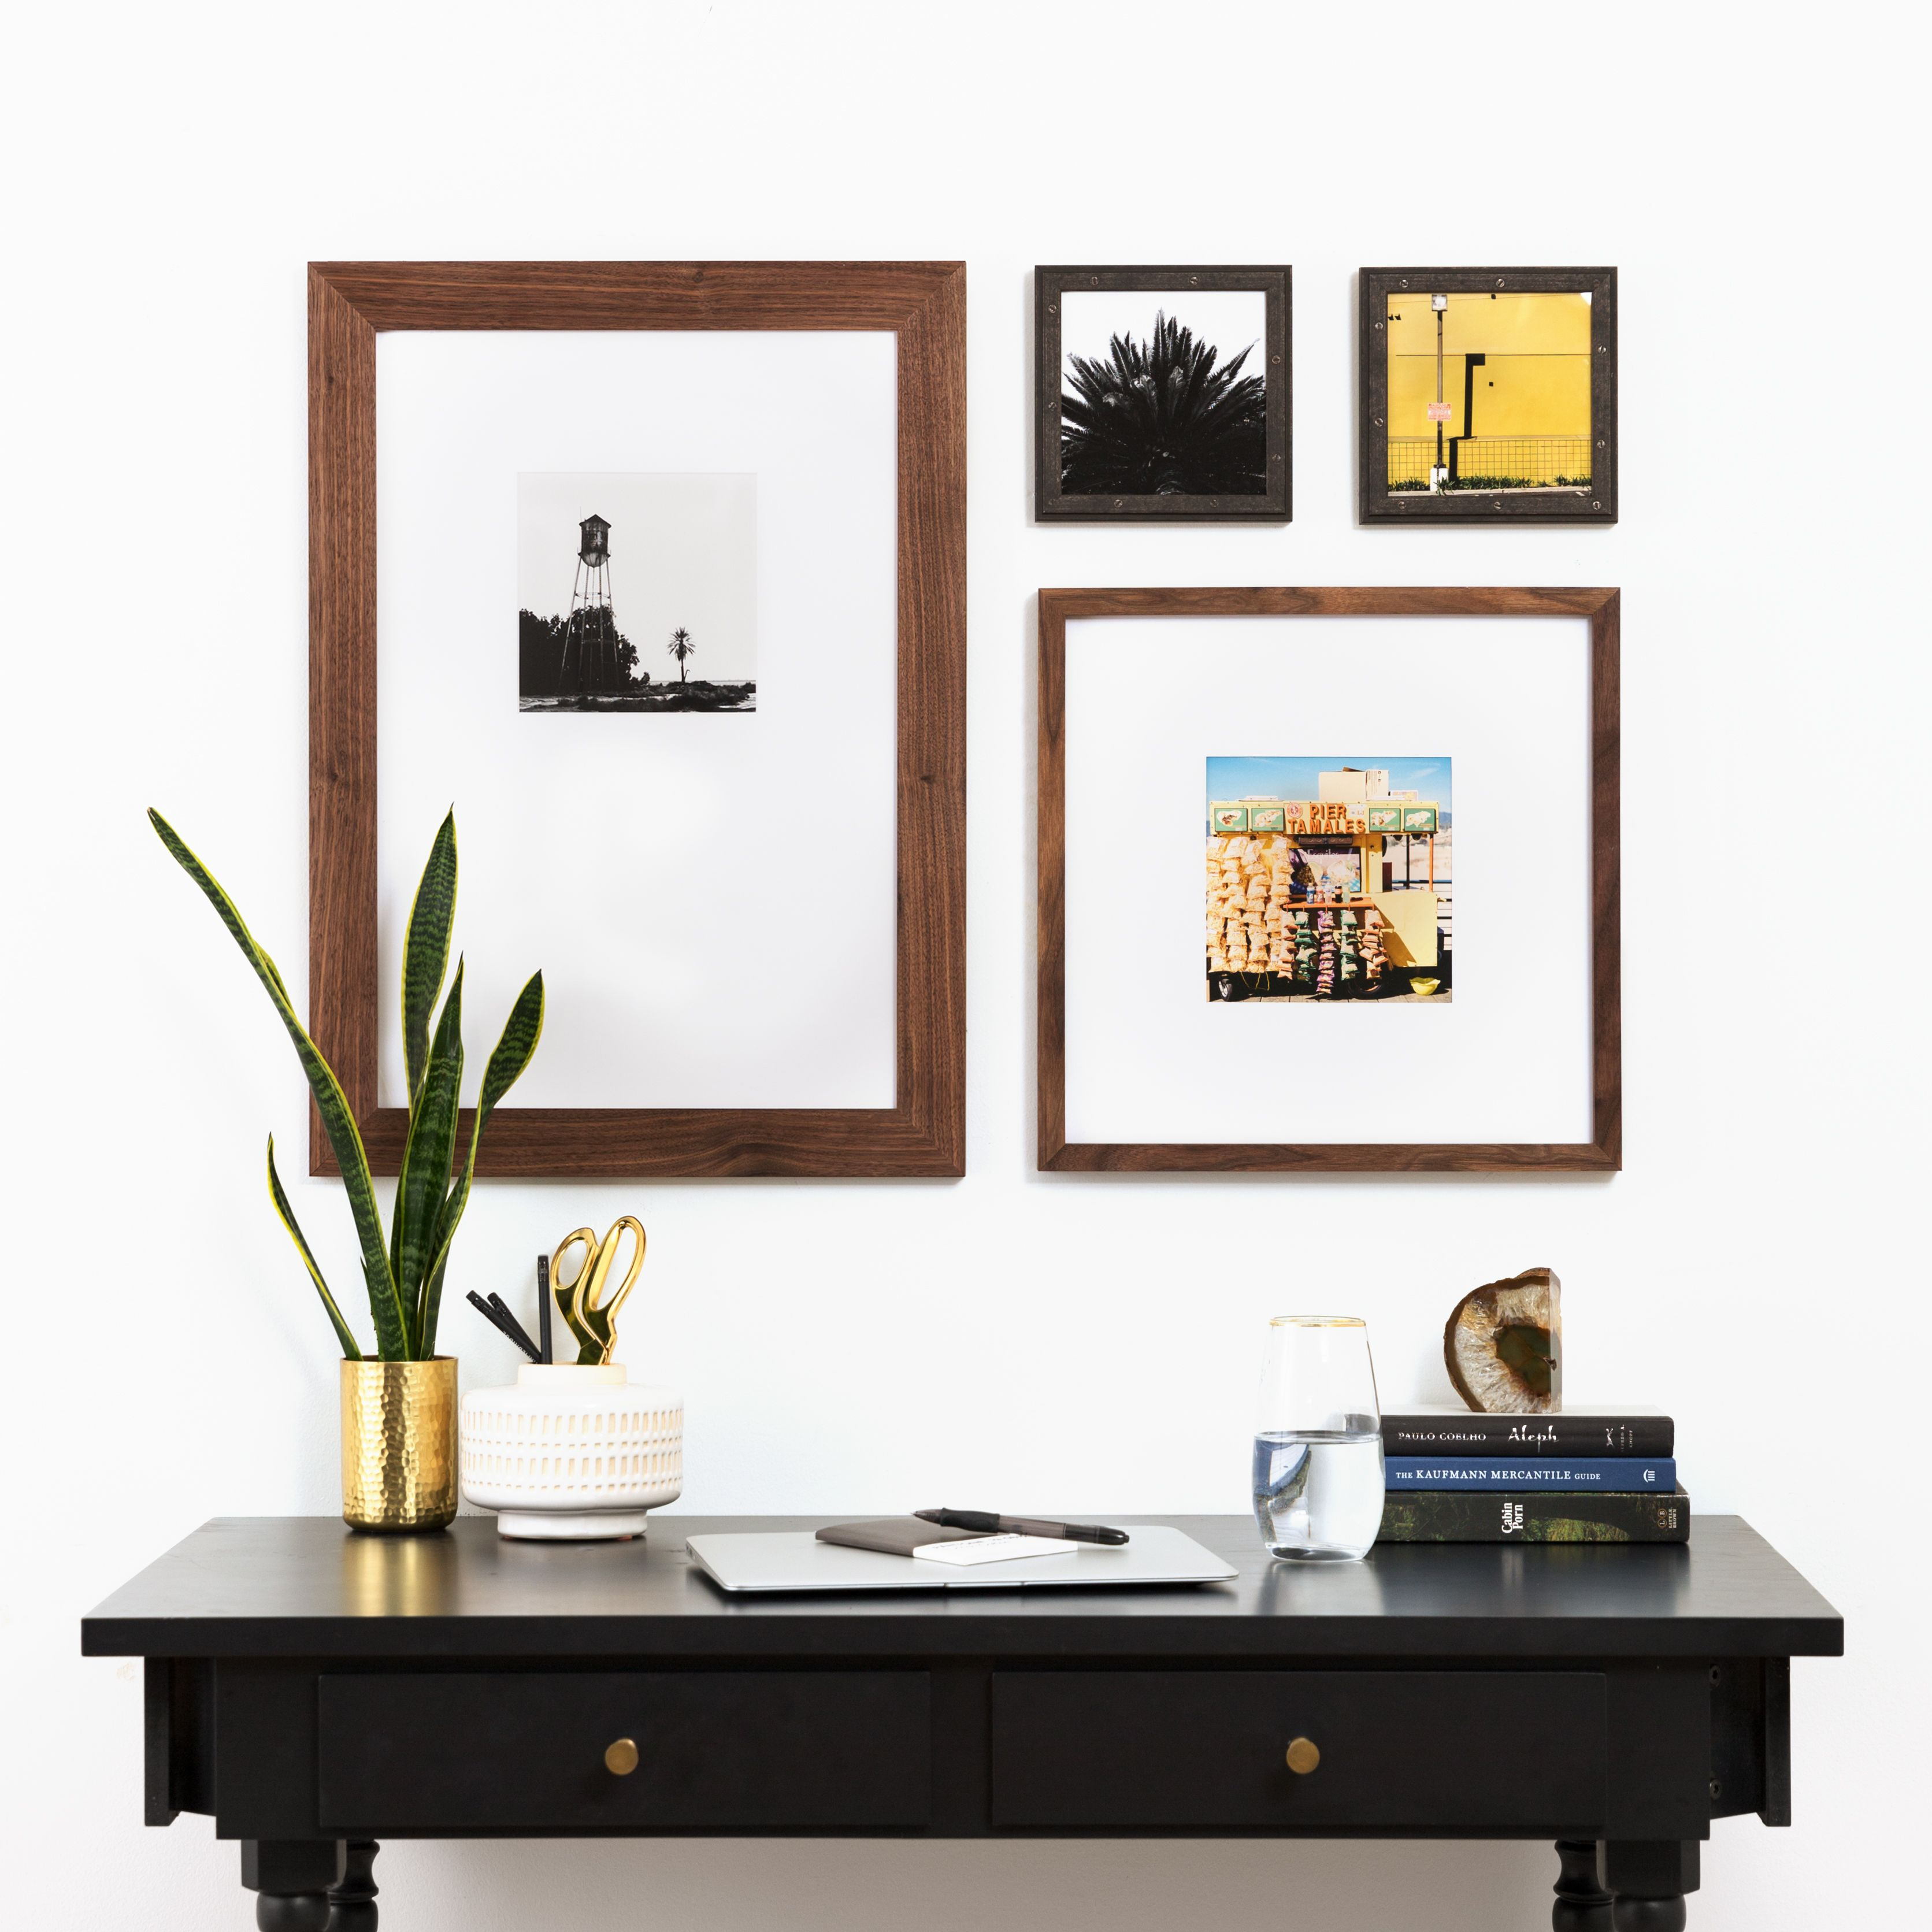 The Uneven Grid 4 Gallery Frames 36 X 25 Framebridge Gallery Wall Layout Framebridge Gallery Wall Gallery Wall Inspiration